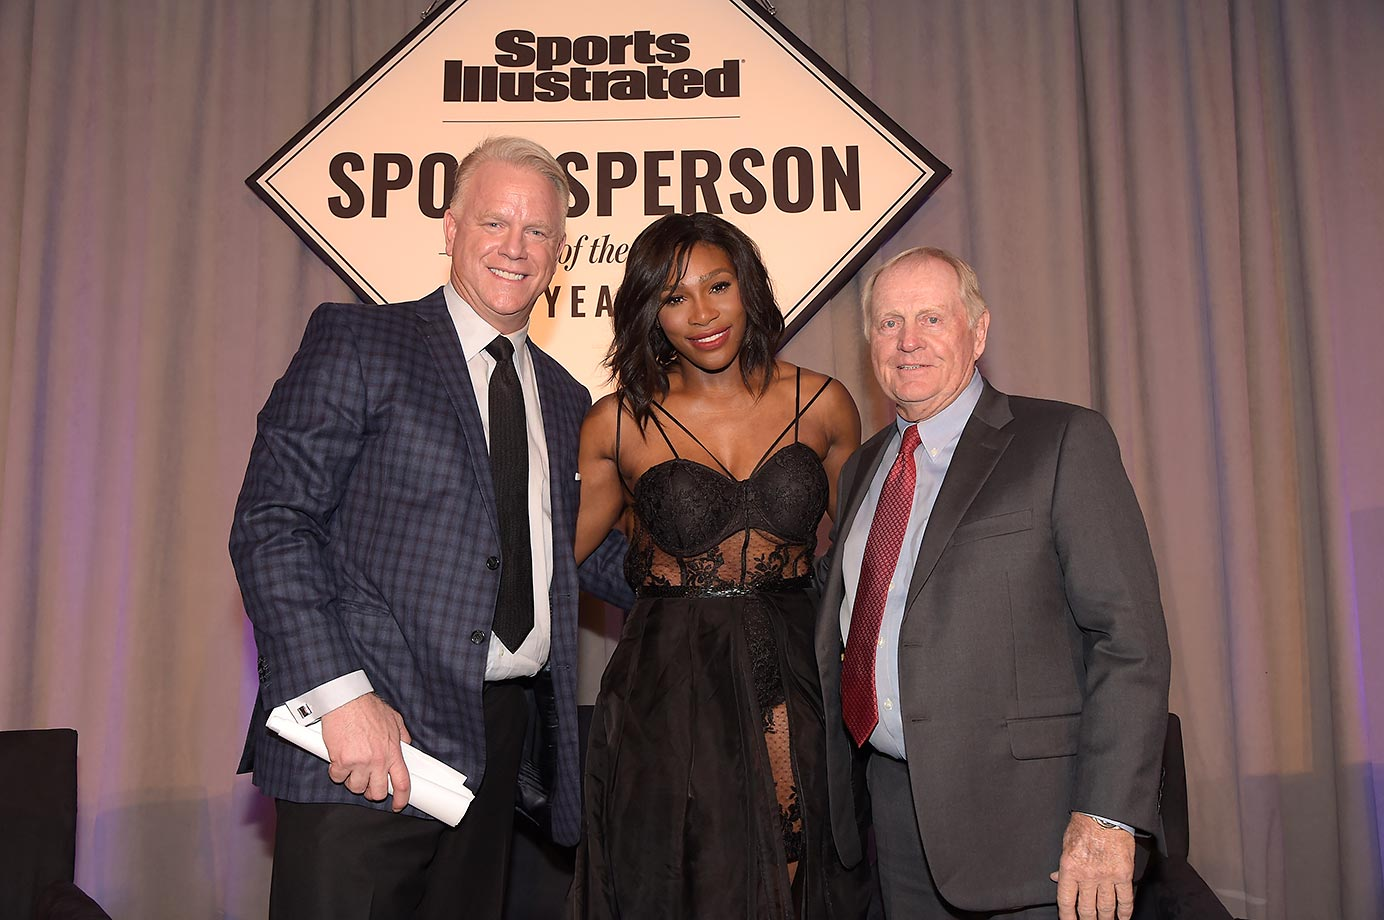 Boomer Esiason, Serena Williams and Jack Nicklaus.